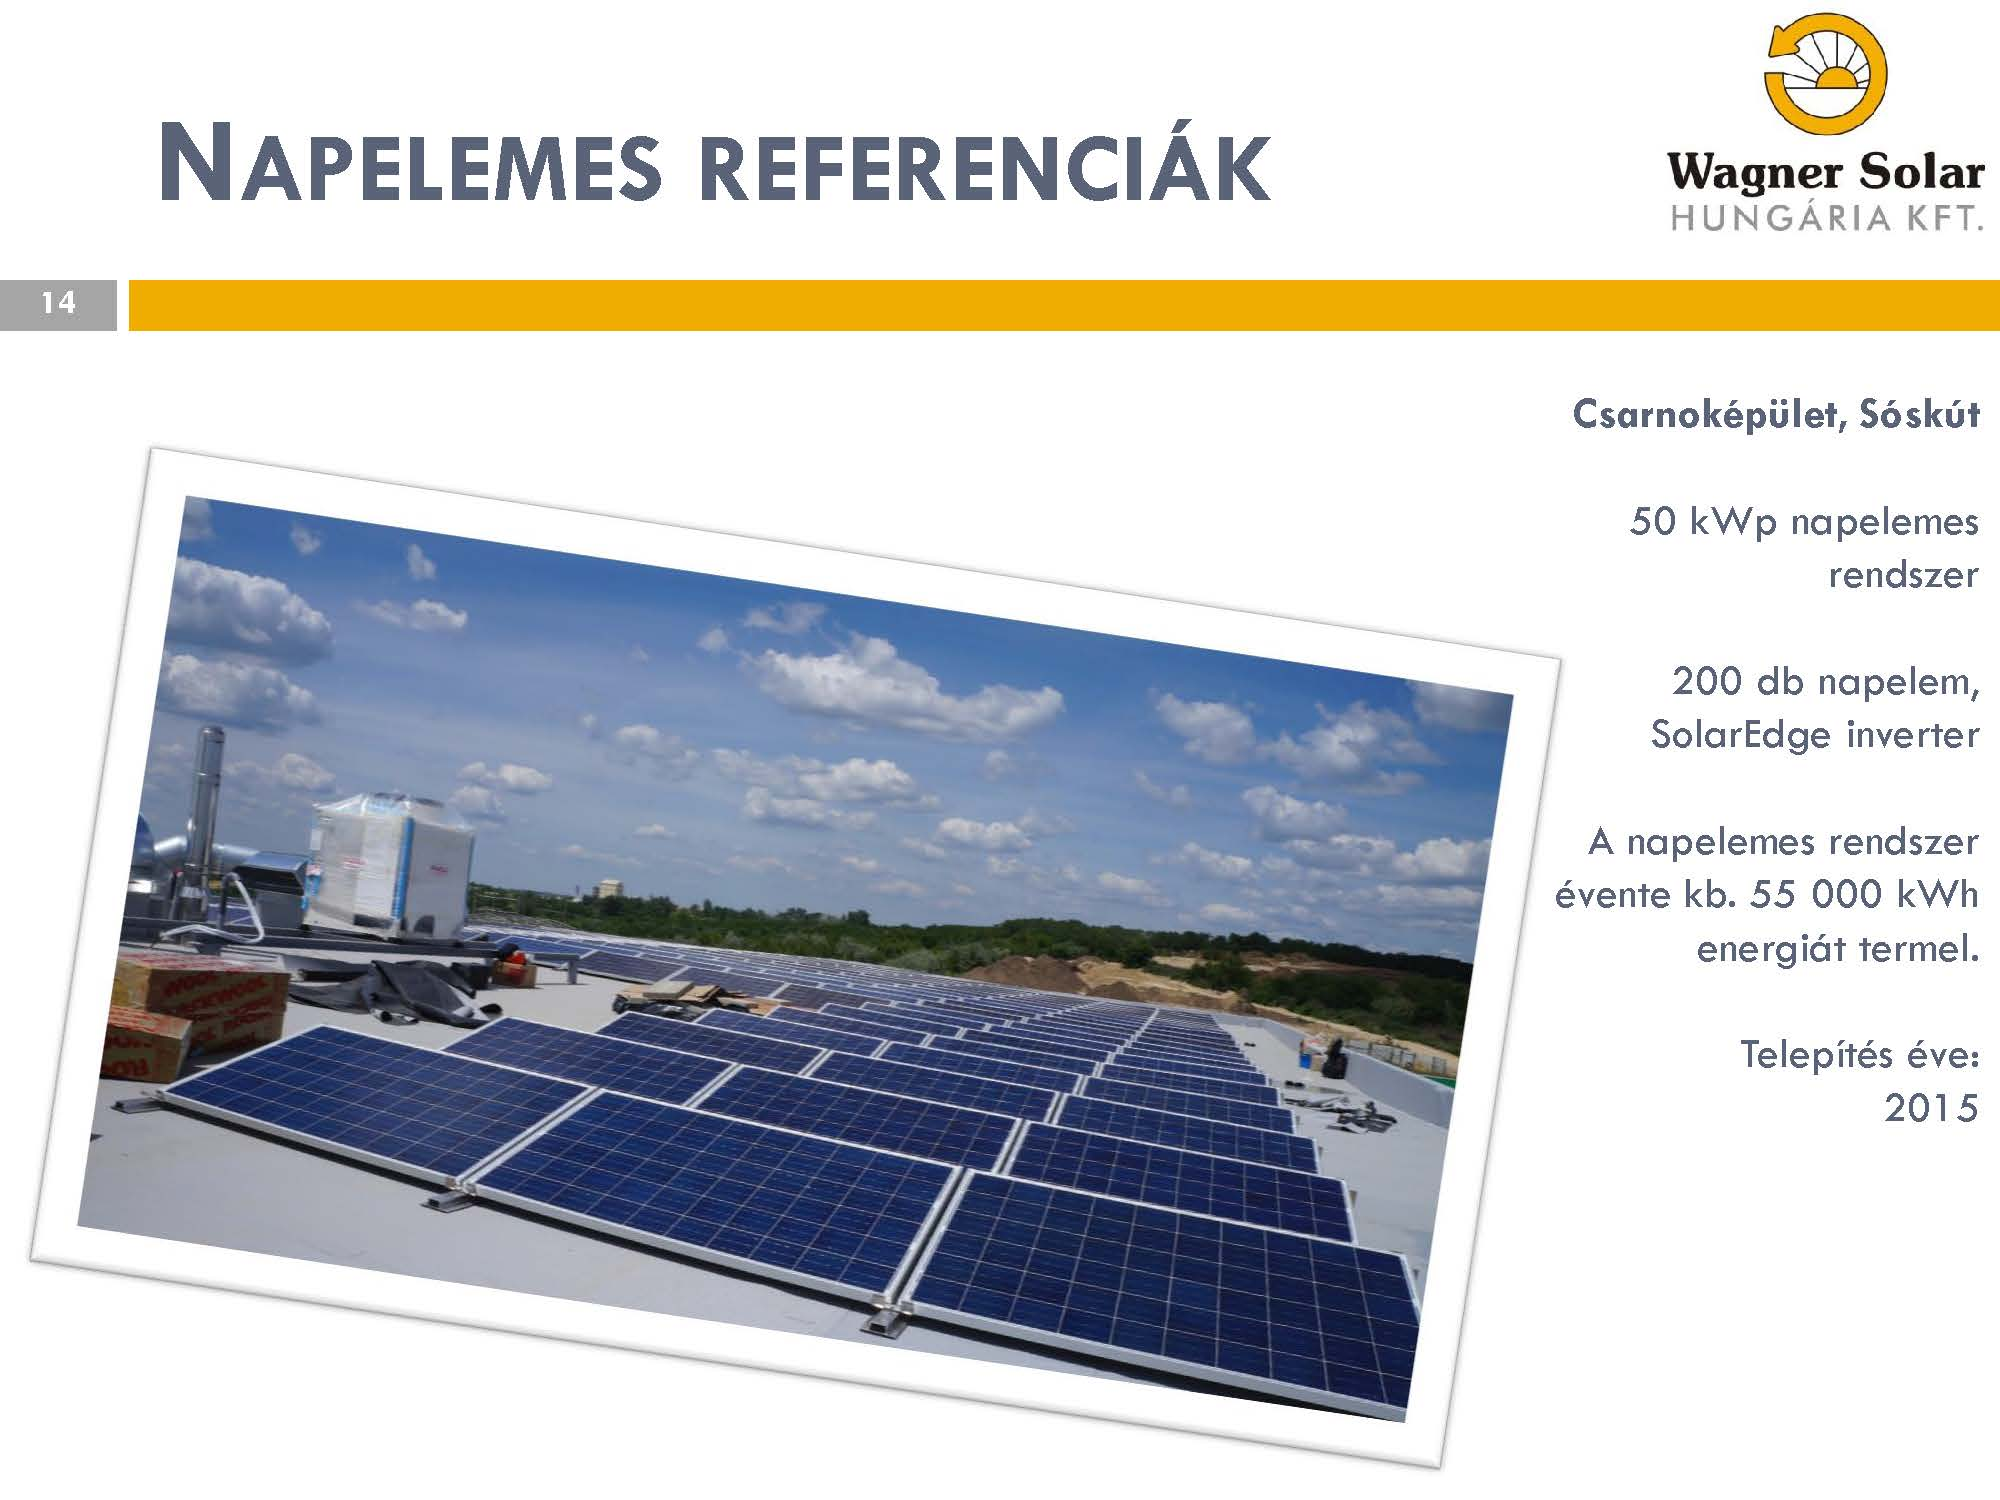 wagnersolar_referencia_2016_page_14.jpg